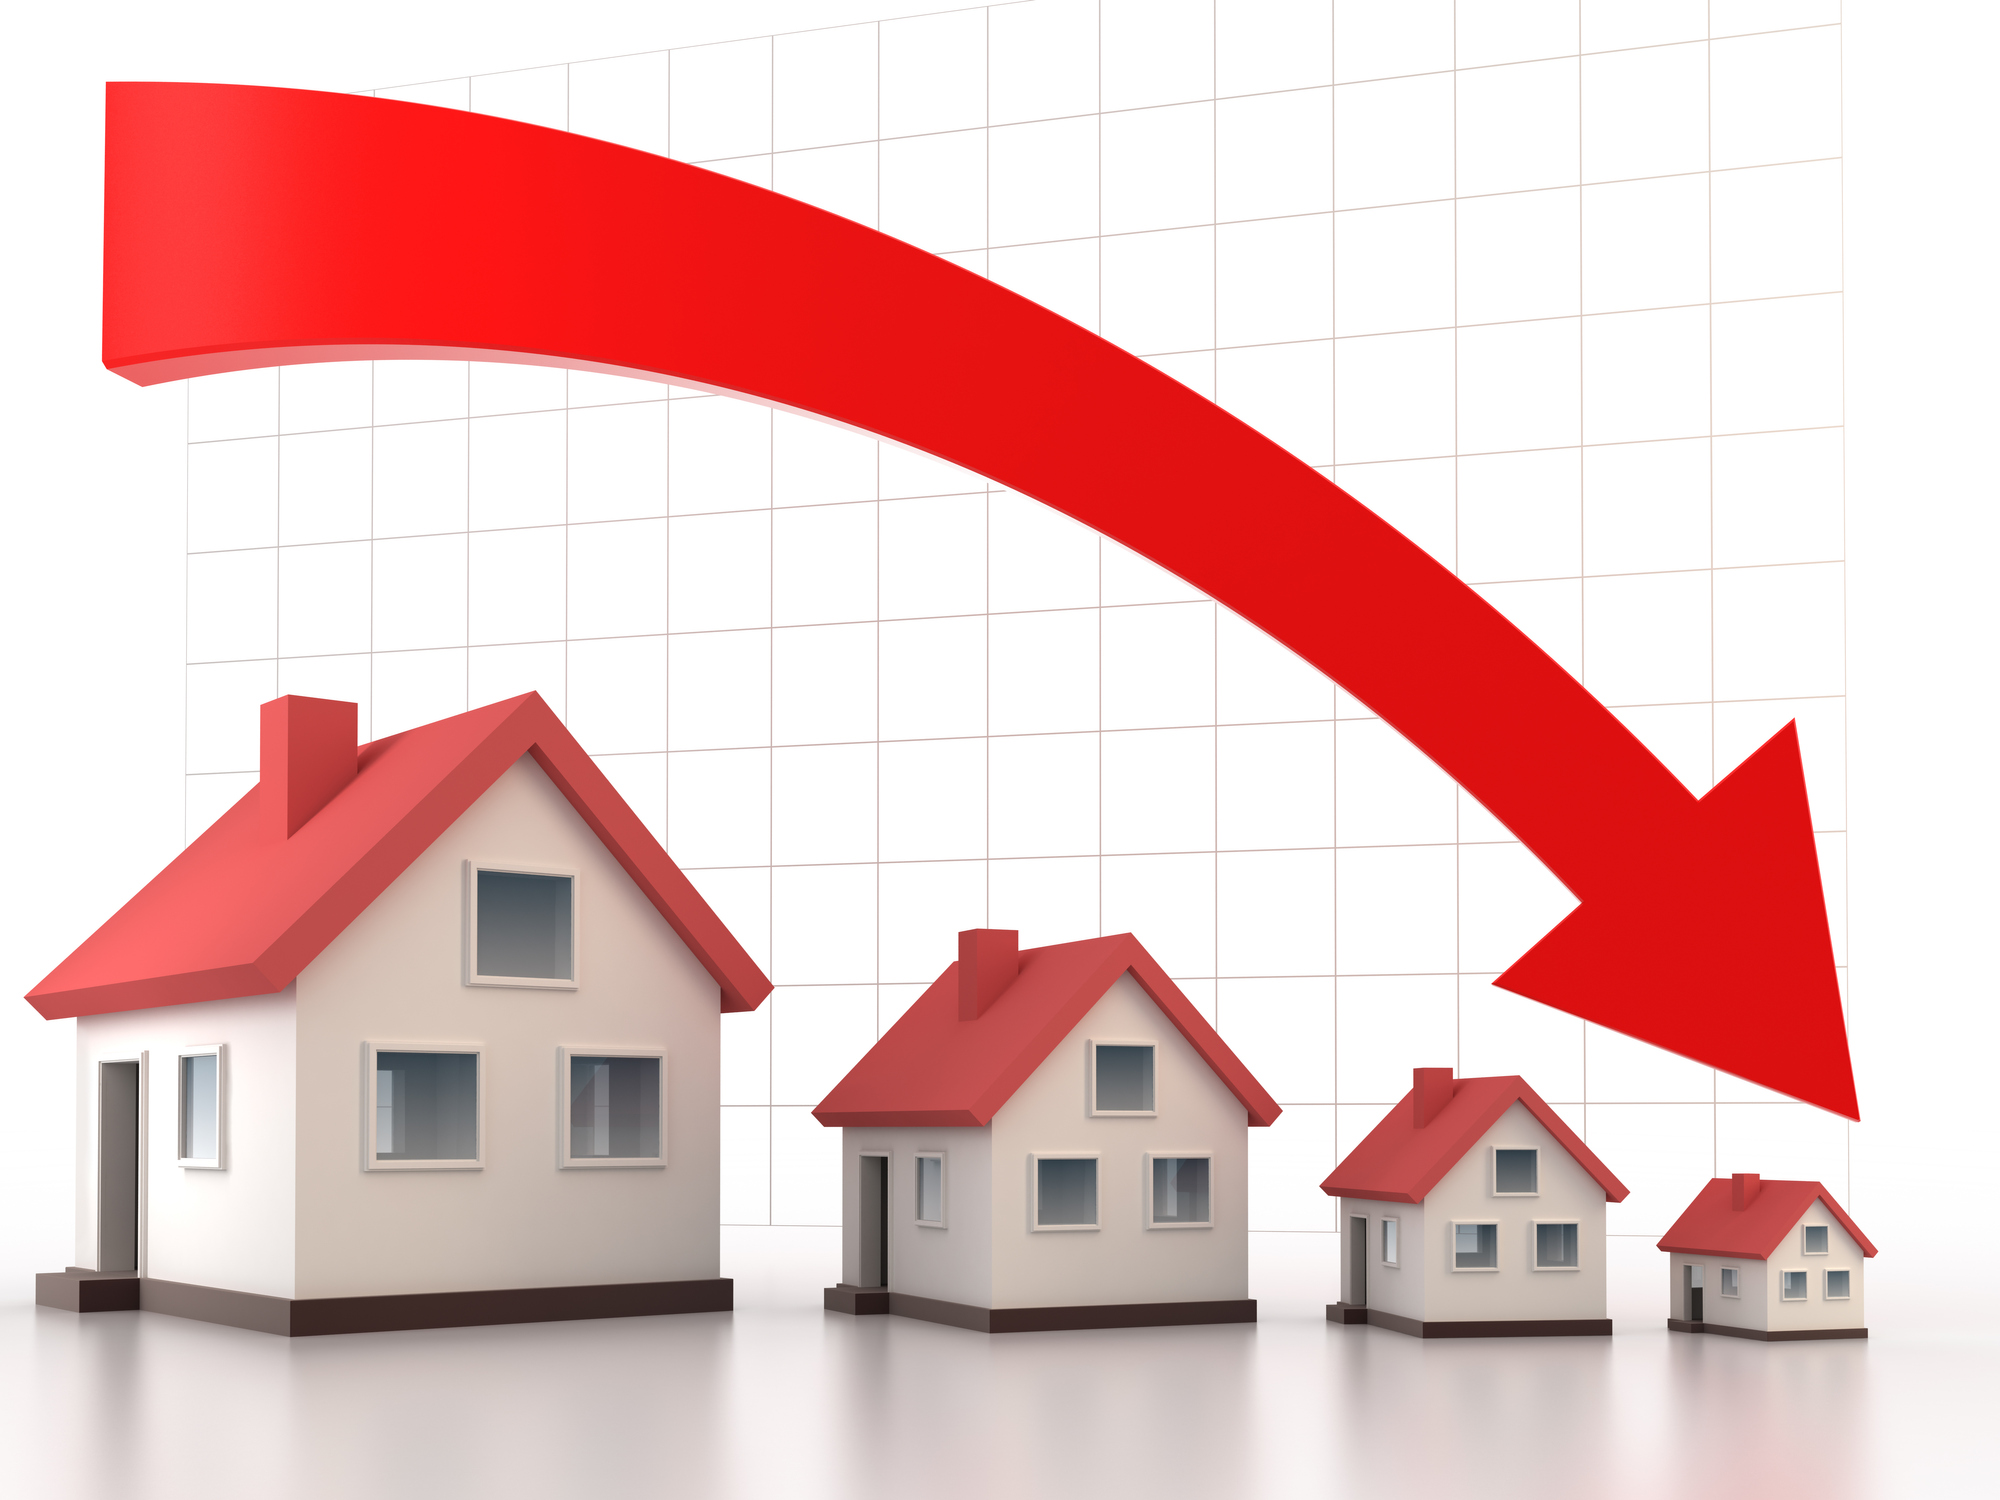 Rising unemployment could see house prices nosedive